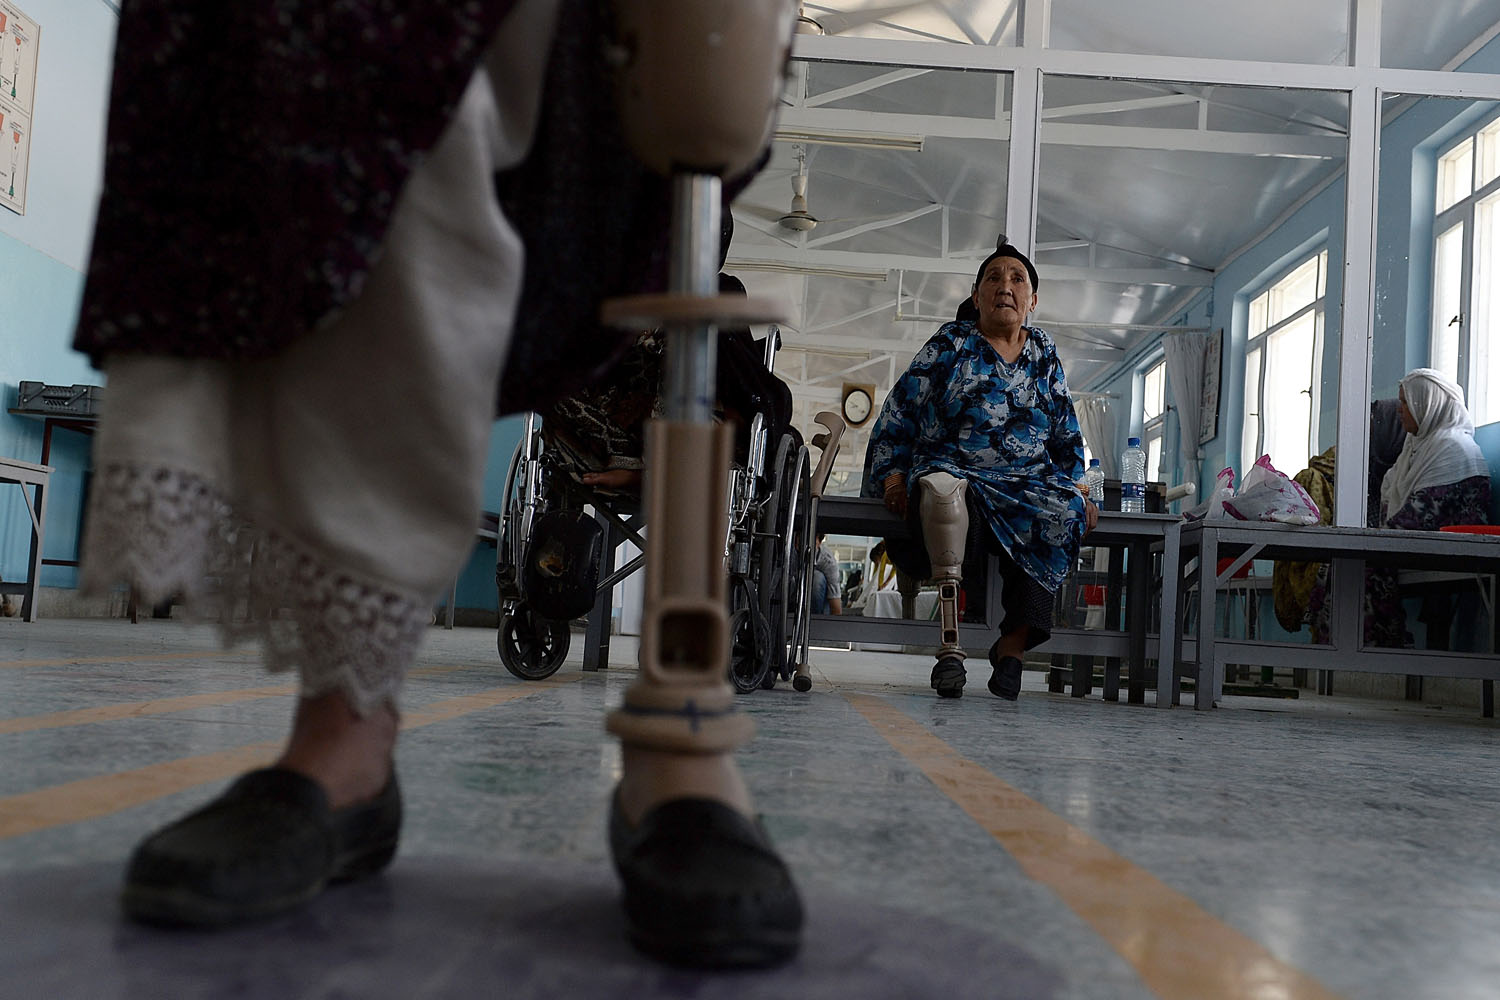 June 5, 2013. An Afghan amputee practices walking with her prosthetic leg at one of the International Committee of the Red Cross (ICRC) hospitals for war victims and the disabled in Kabul.